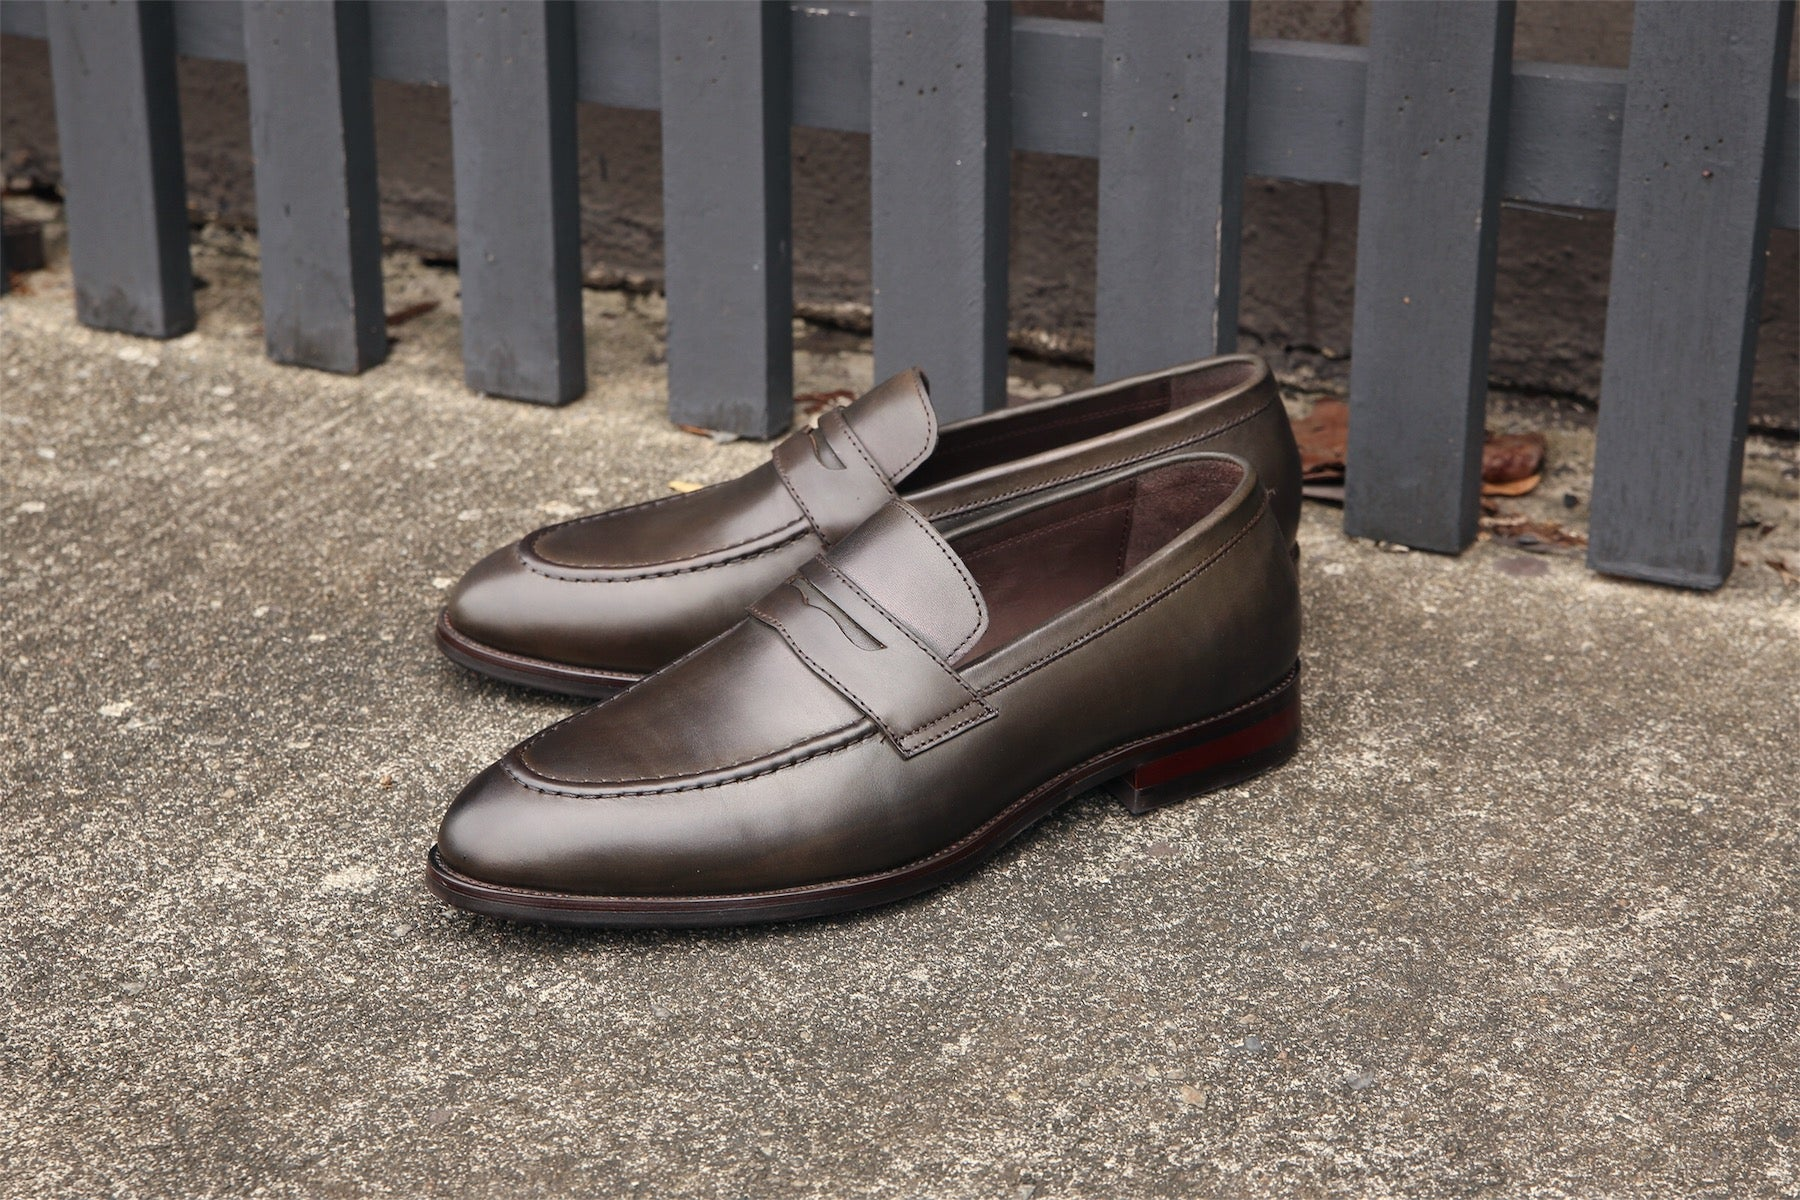 Earnest Collective Quality Mens Shoes Fair Prices D Island Slip On British Comfort Leather Dark Brown Limited Edition